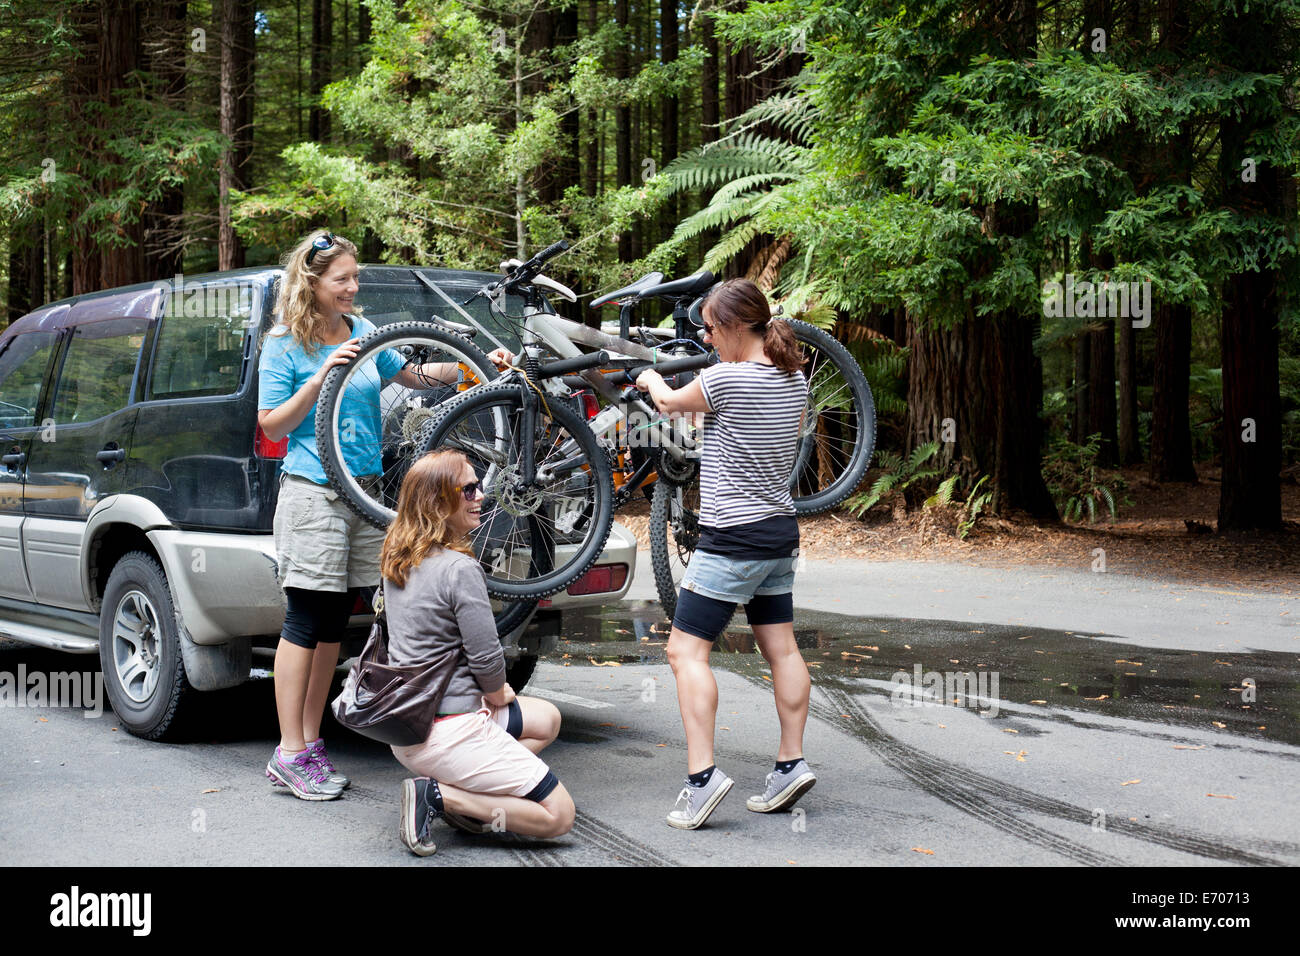 Three women mountain bikers lifting bikes from four wheel vehicle in forest - Stock Image